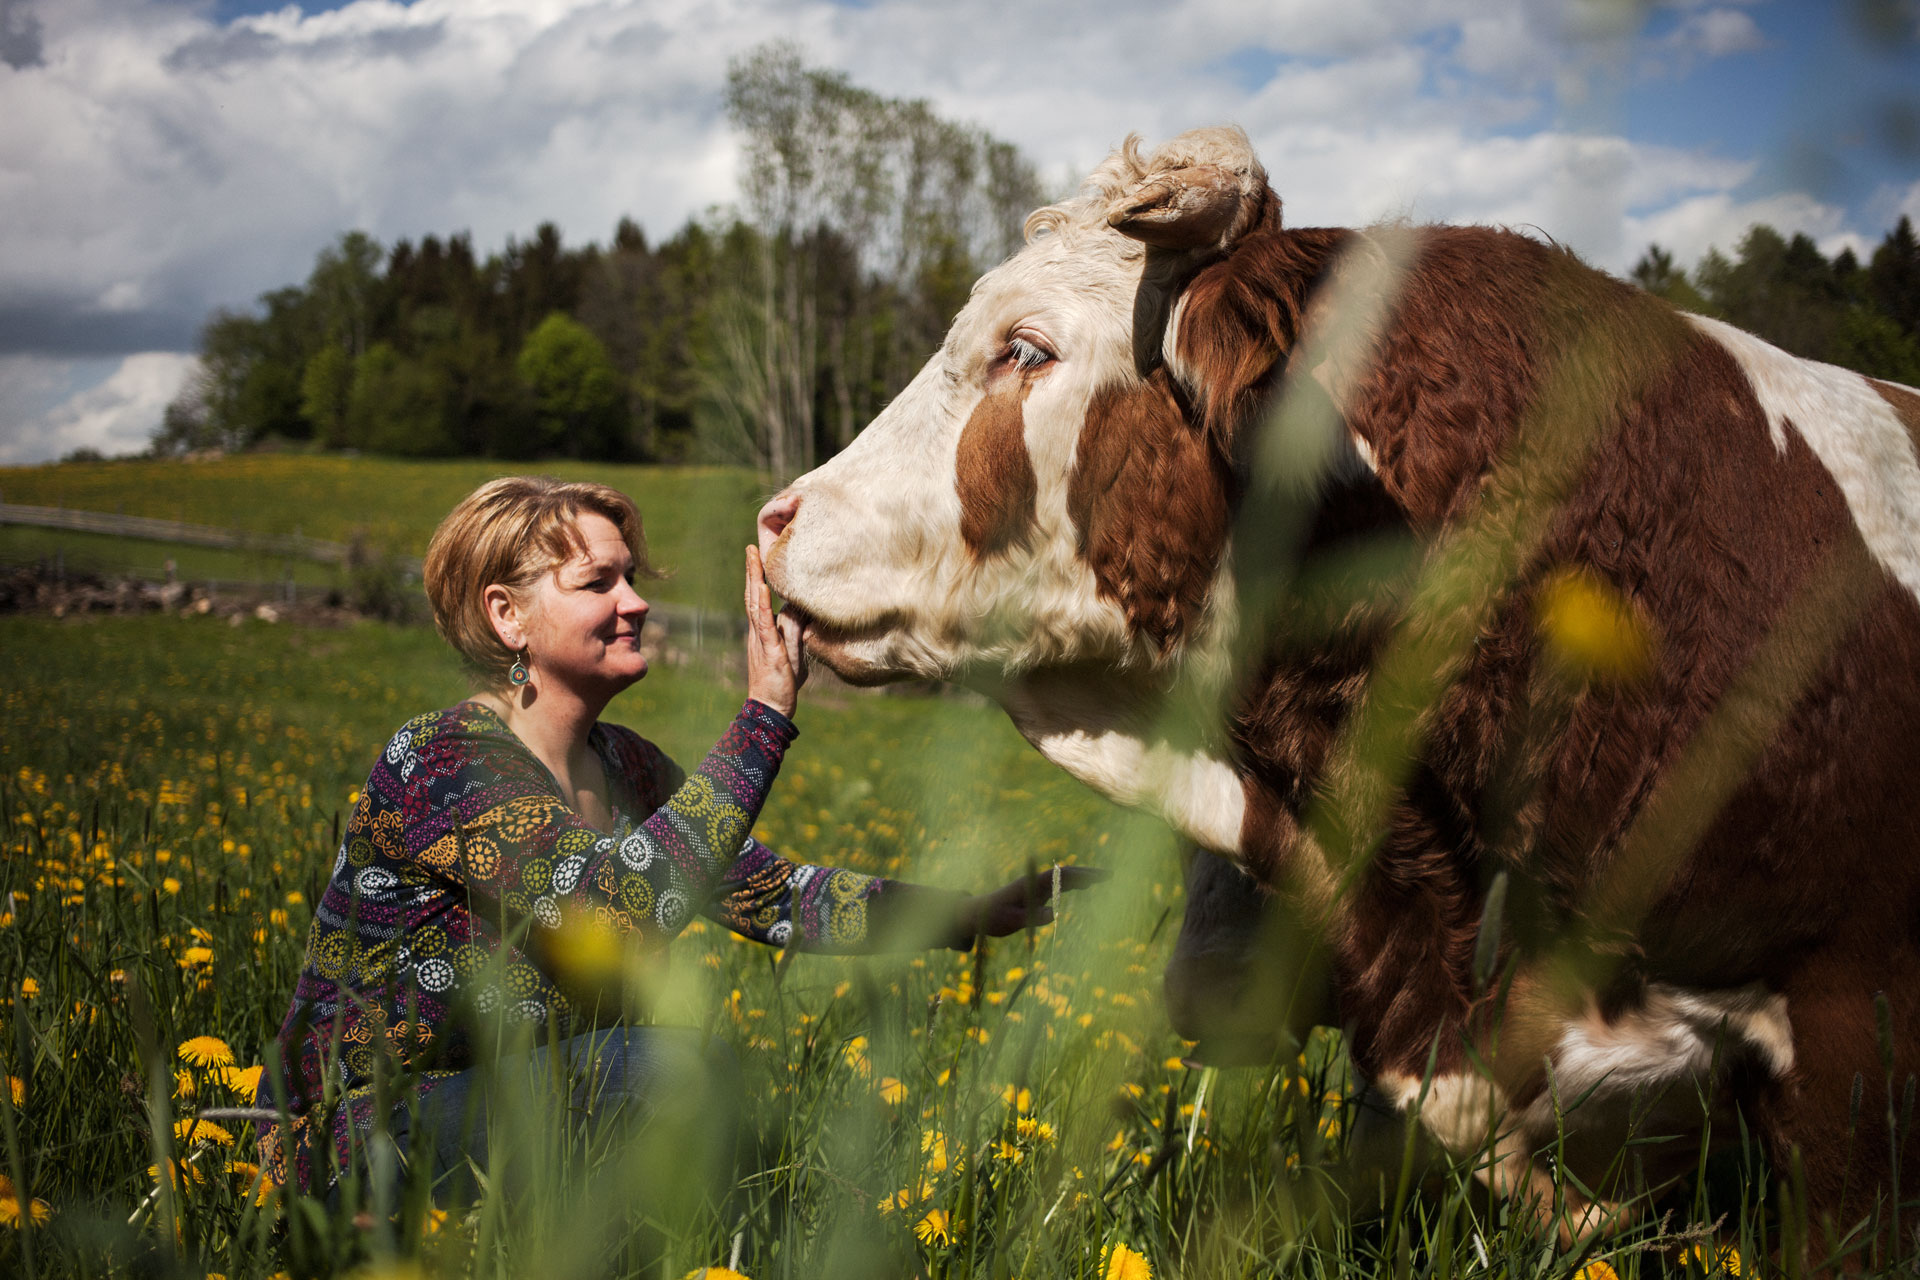 timo-stammberger-photography-fotografie-animal-rights-cow-rind-tierrechte-natur-erdlingshof-mitgefuehl-compassion